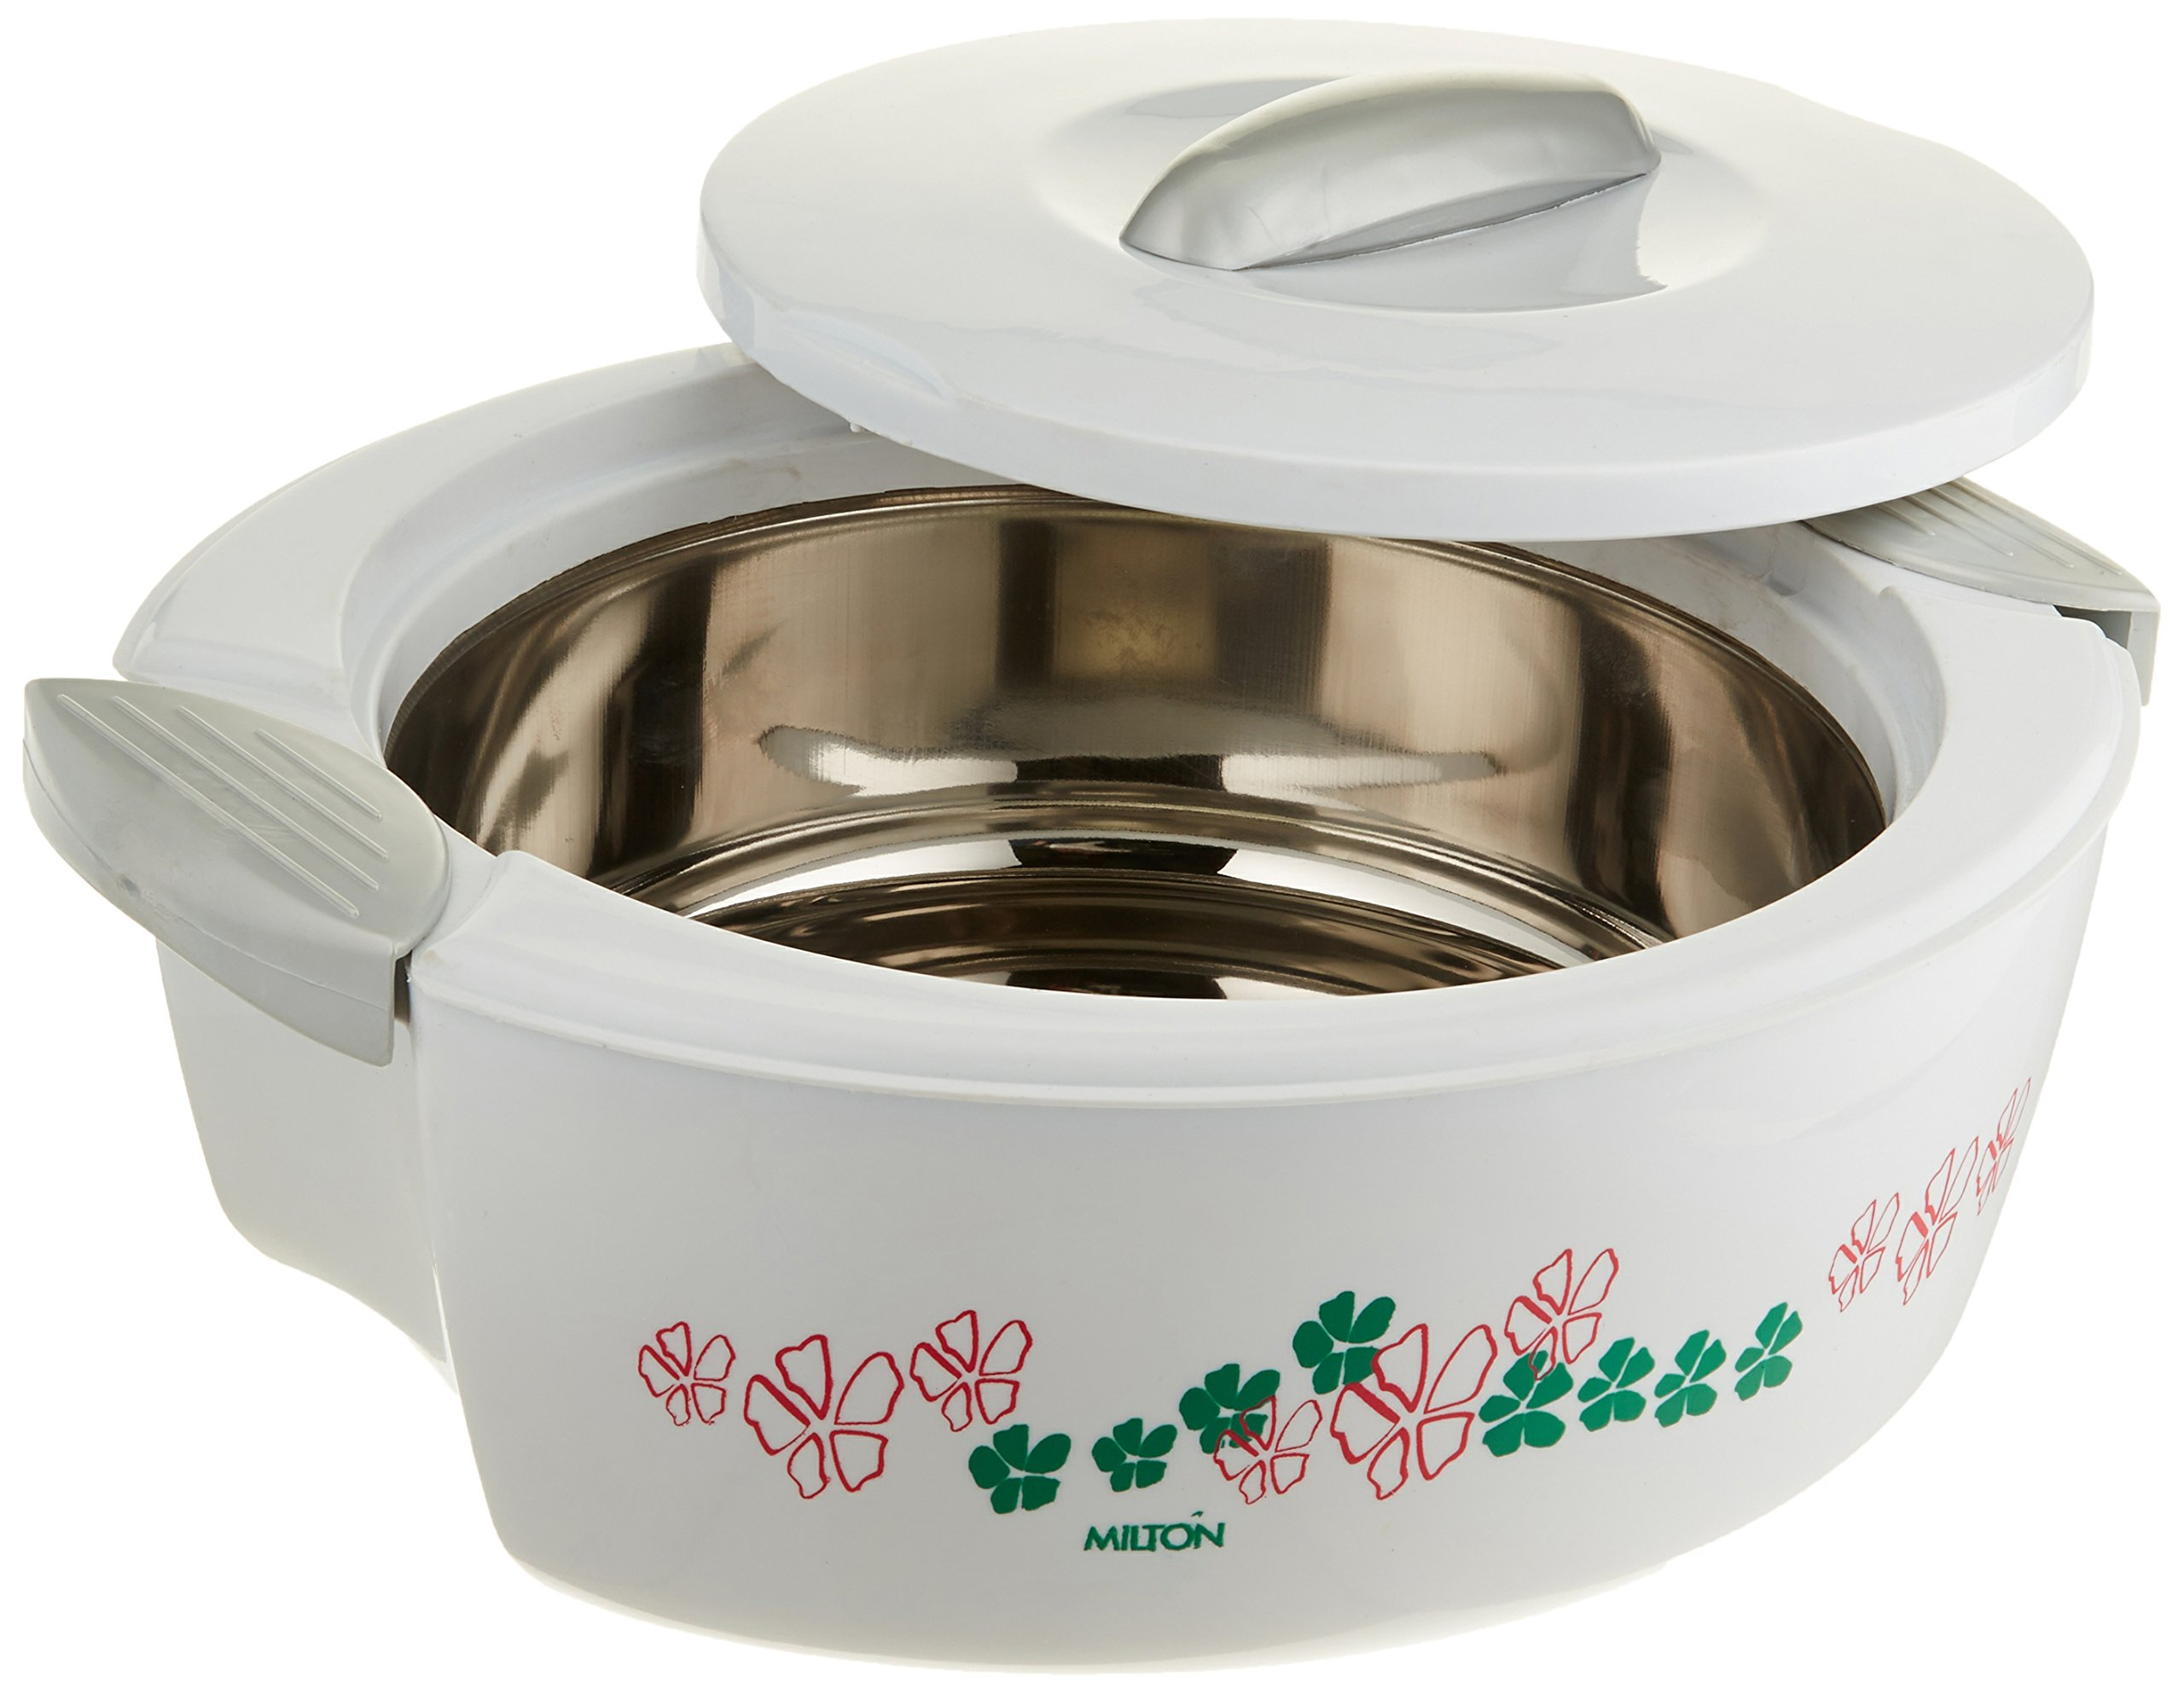 MILTON SAVOUR 2.5-Liter Keep Warm/Cold Insulated Hot Pot Thermo Casserole, Small, White